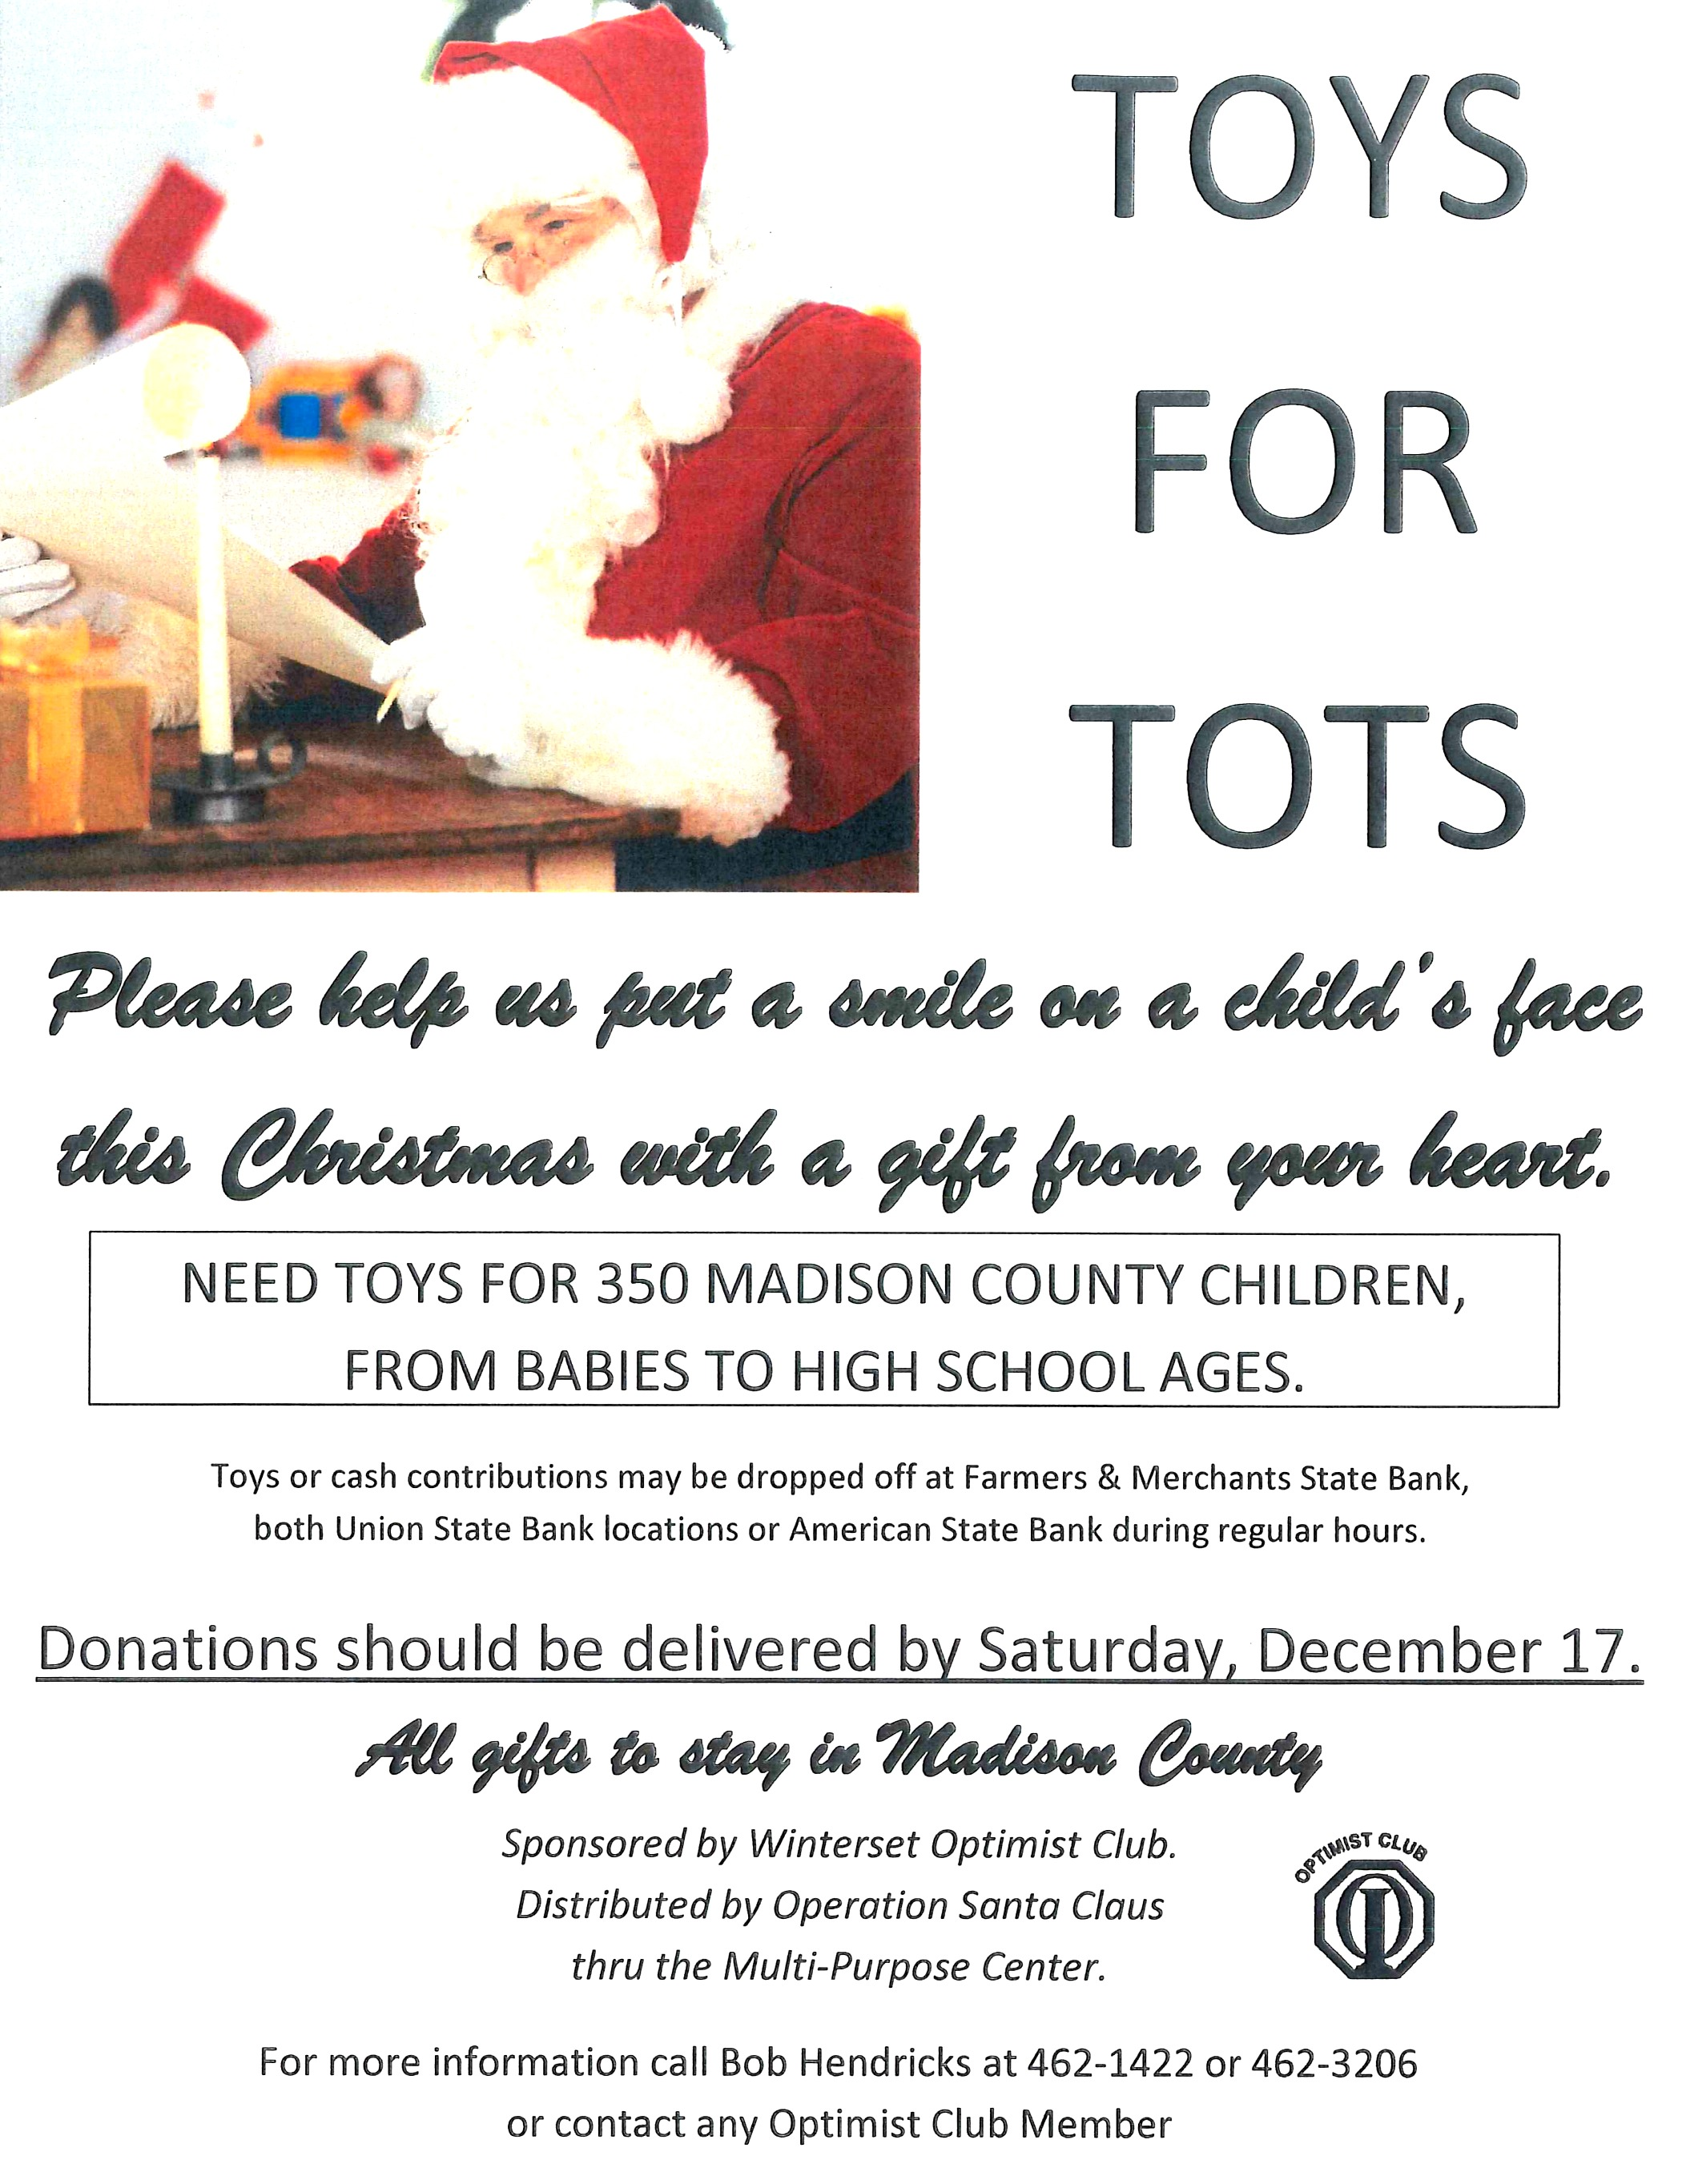 toys for tots-2